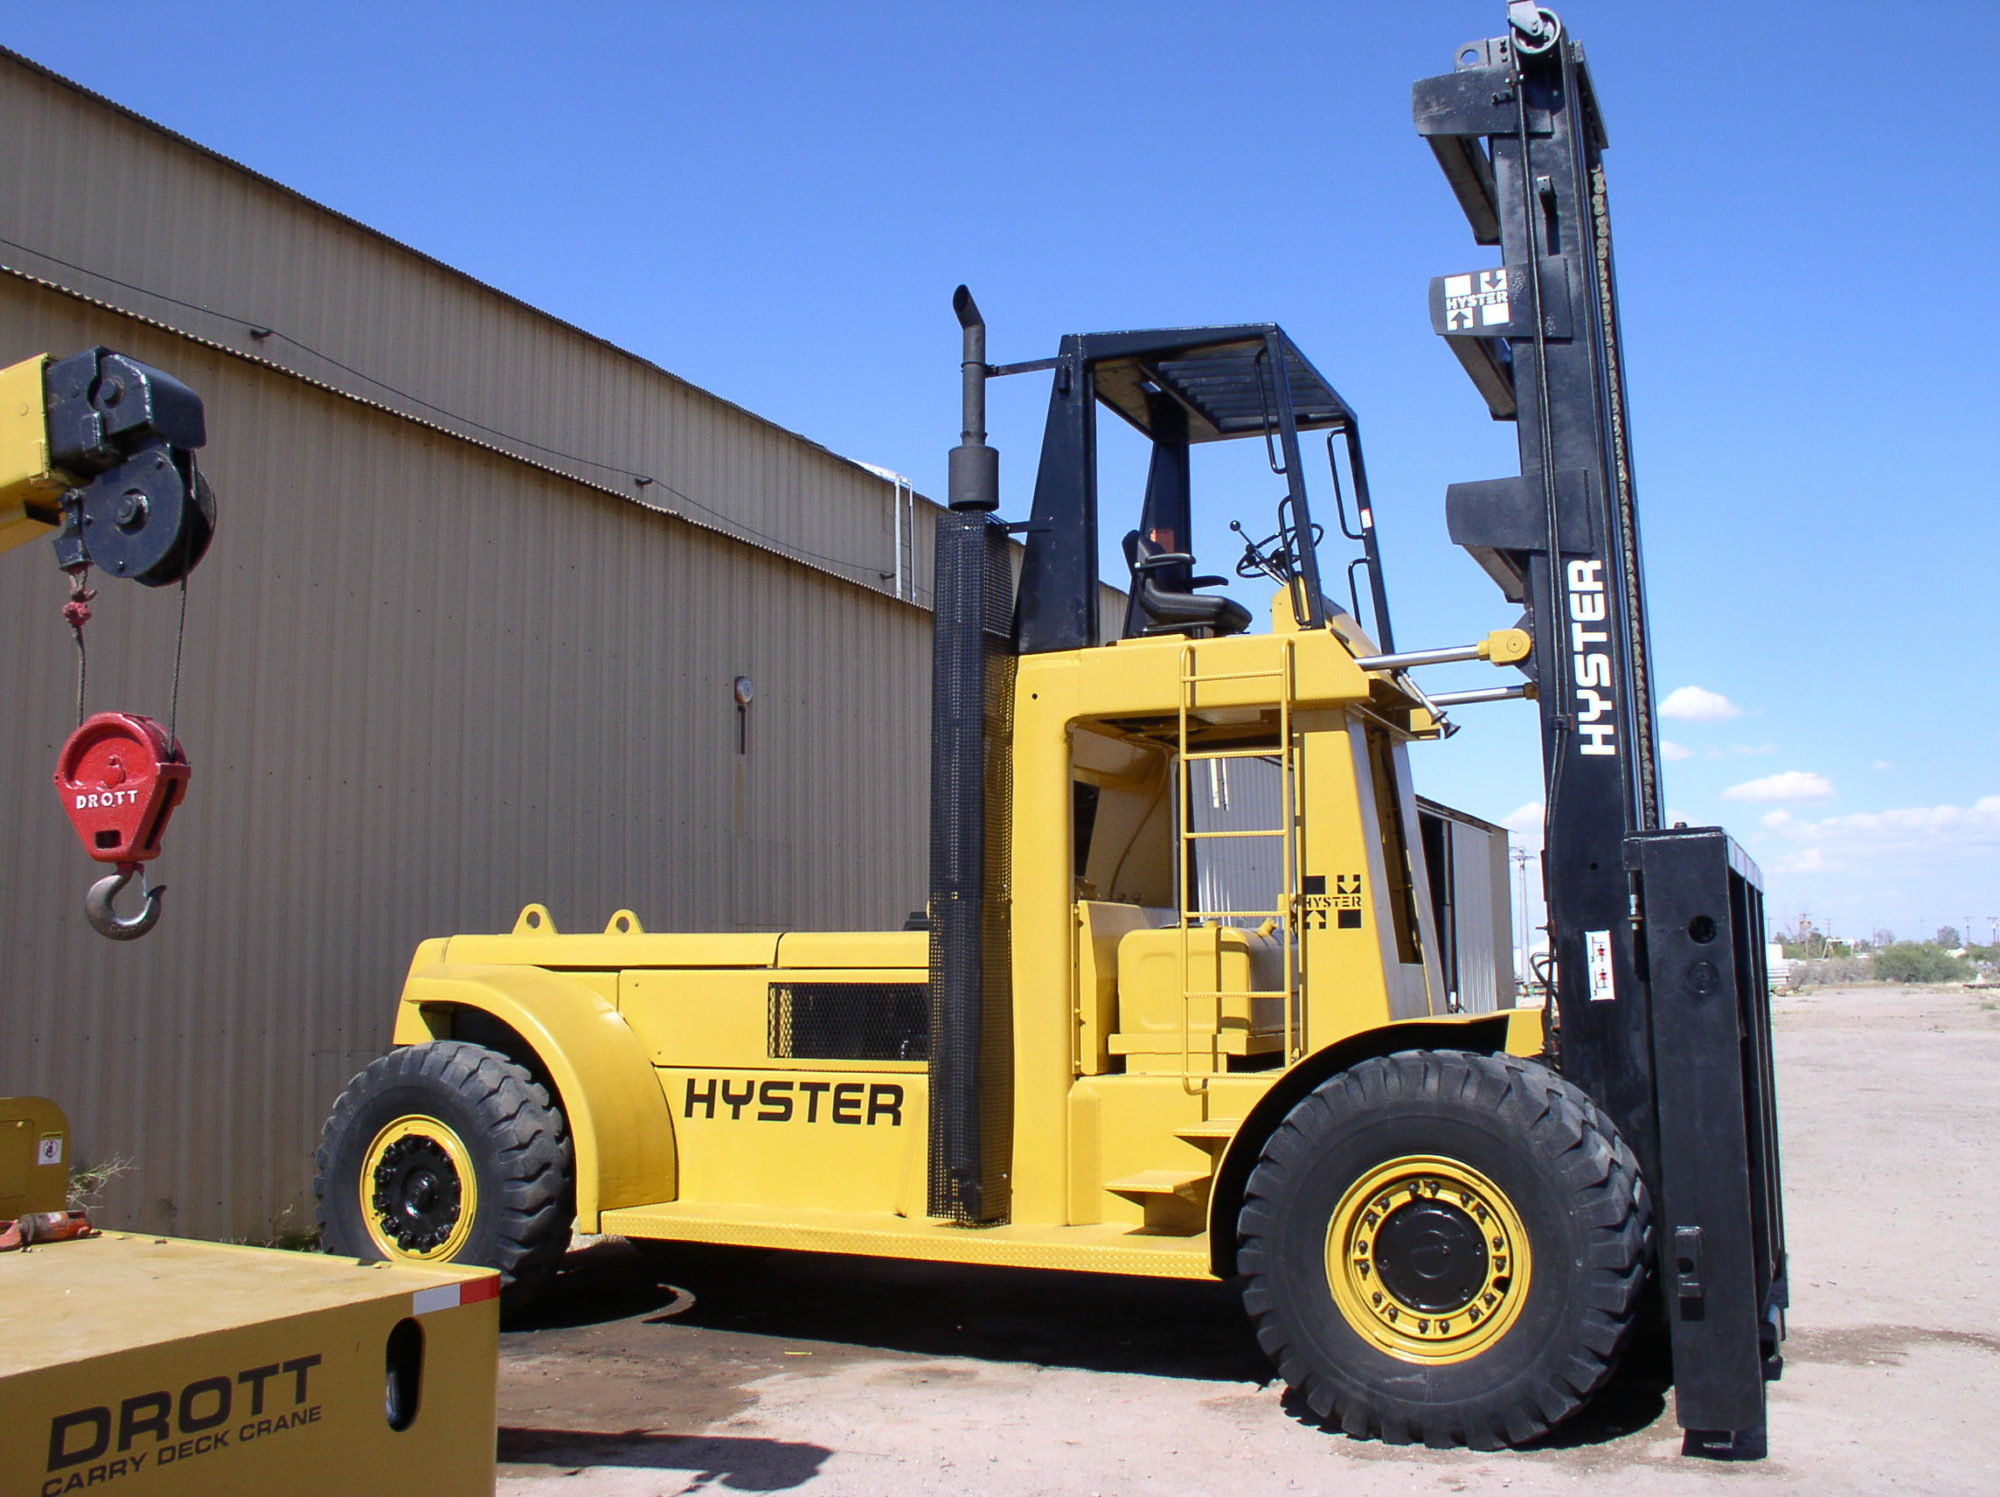 Hyster 1150